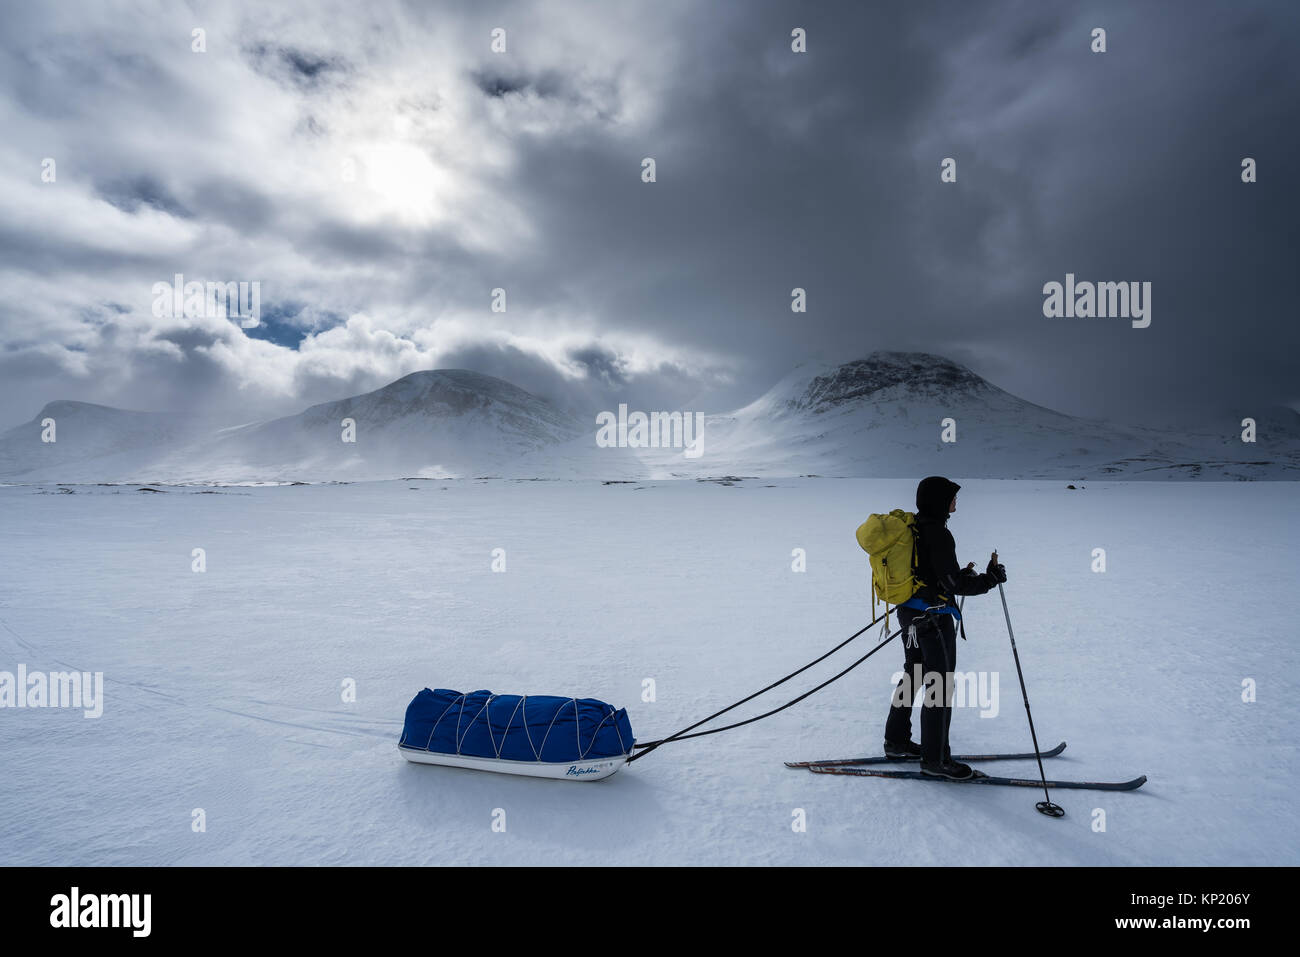 Ski touring in Swedish Lapland, in Kebnekaise massive mountain range. Sweden, Europe - Stock Image